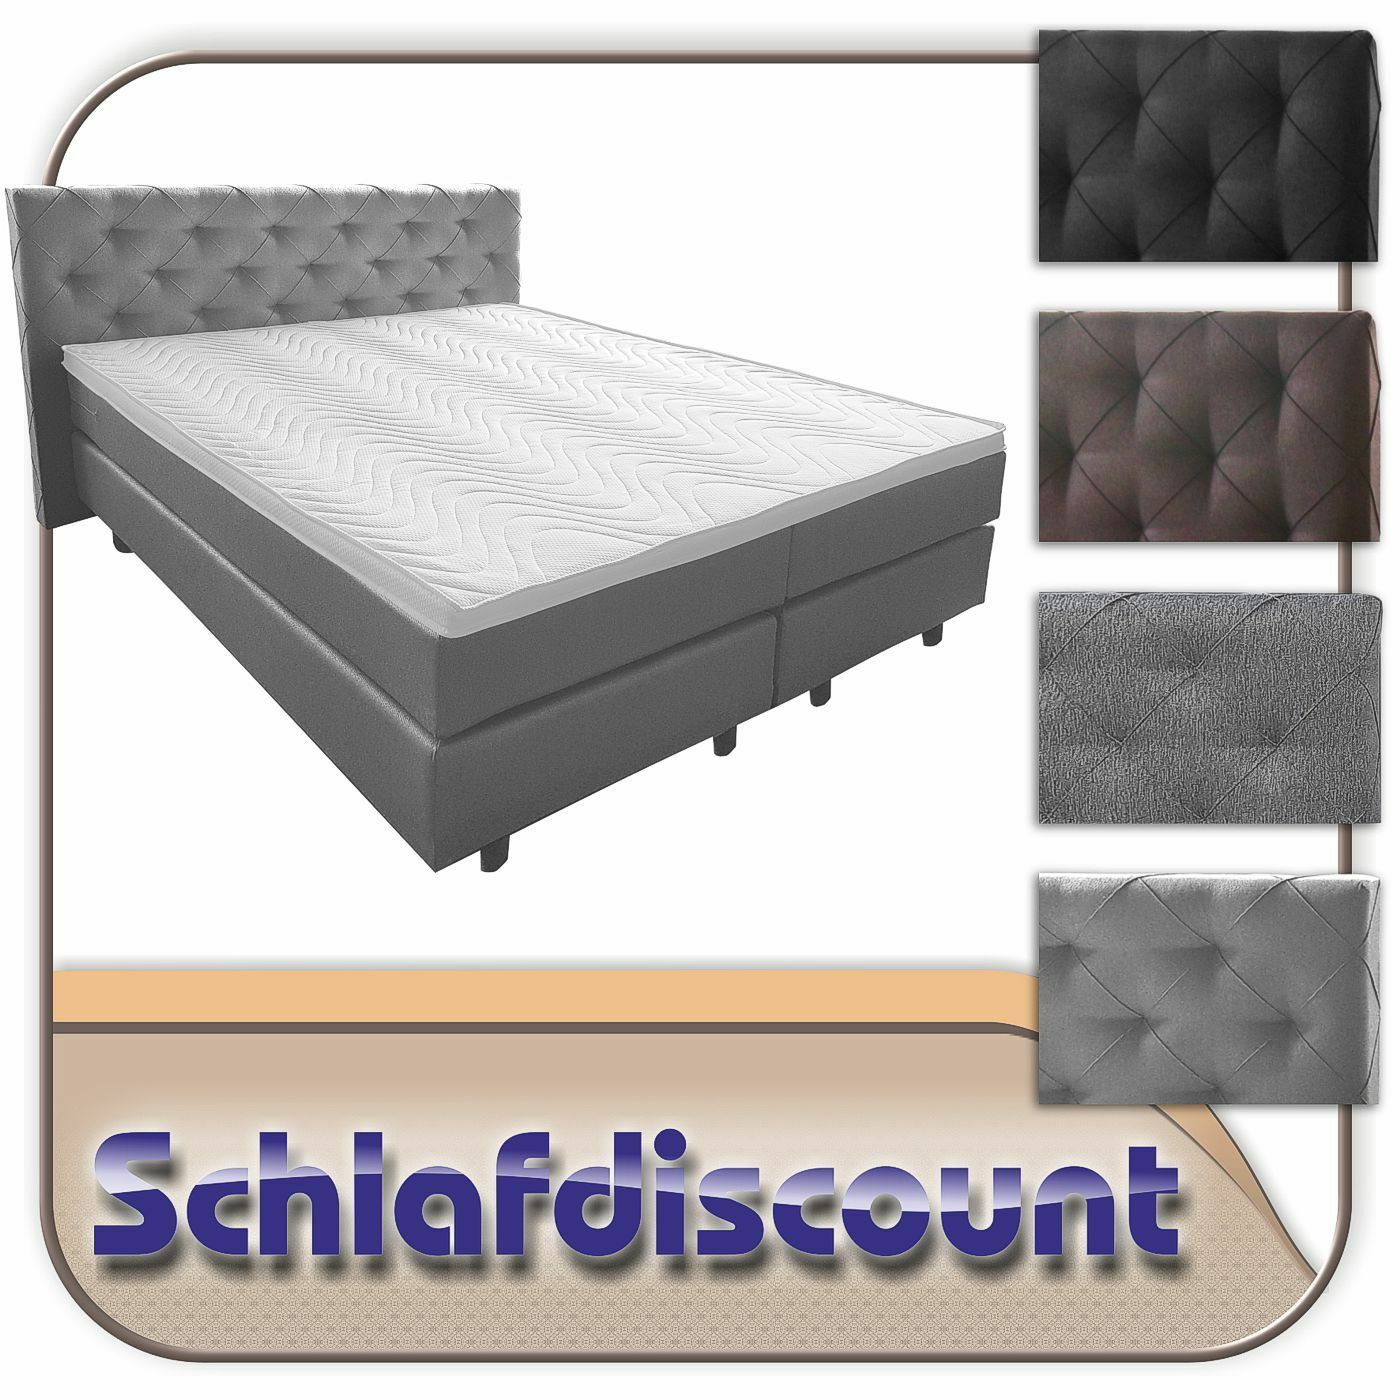 boxspringbett 7 zonen taschenfederkern stockholm 180x200cm. Black Bedroom Furniture Sets. Home Design Ideas